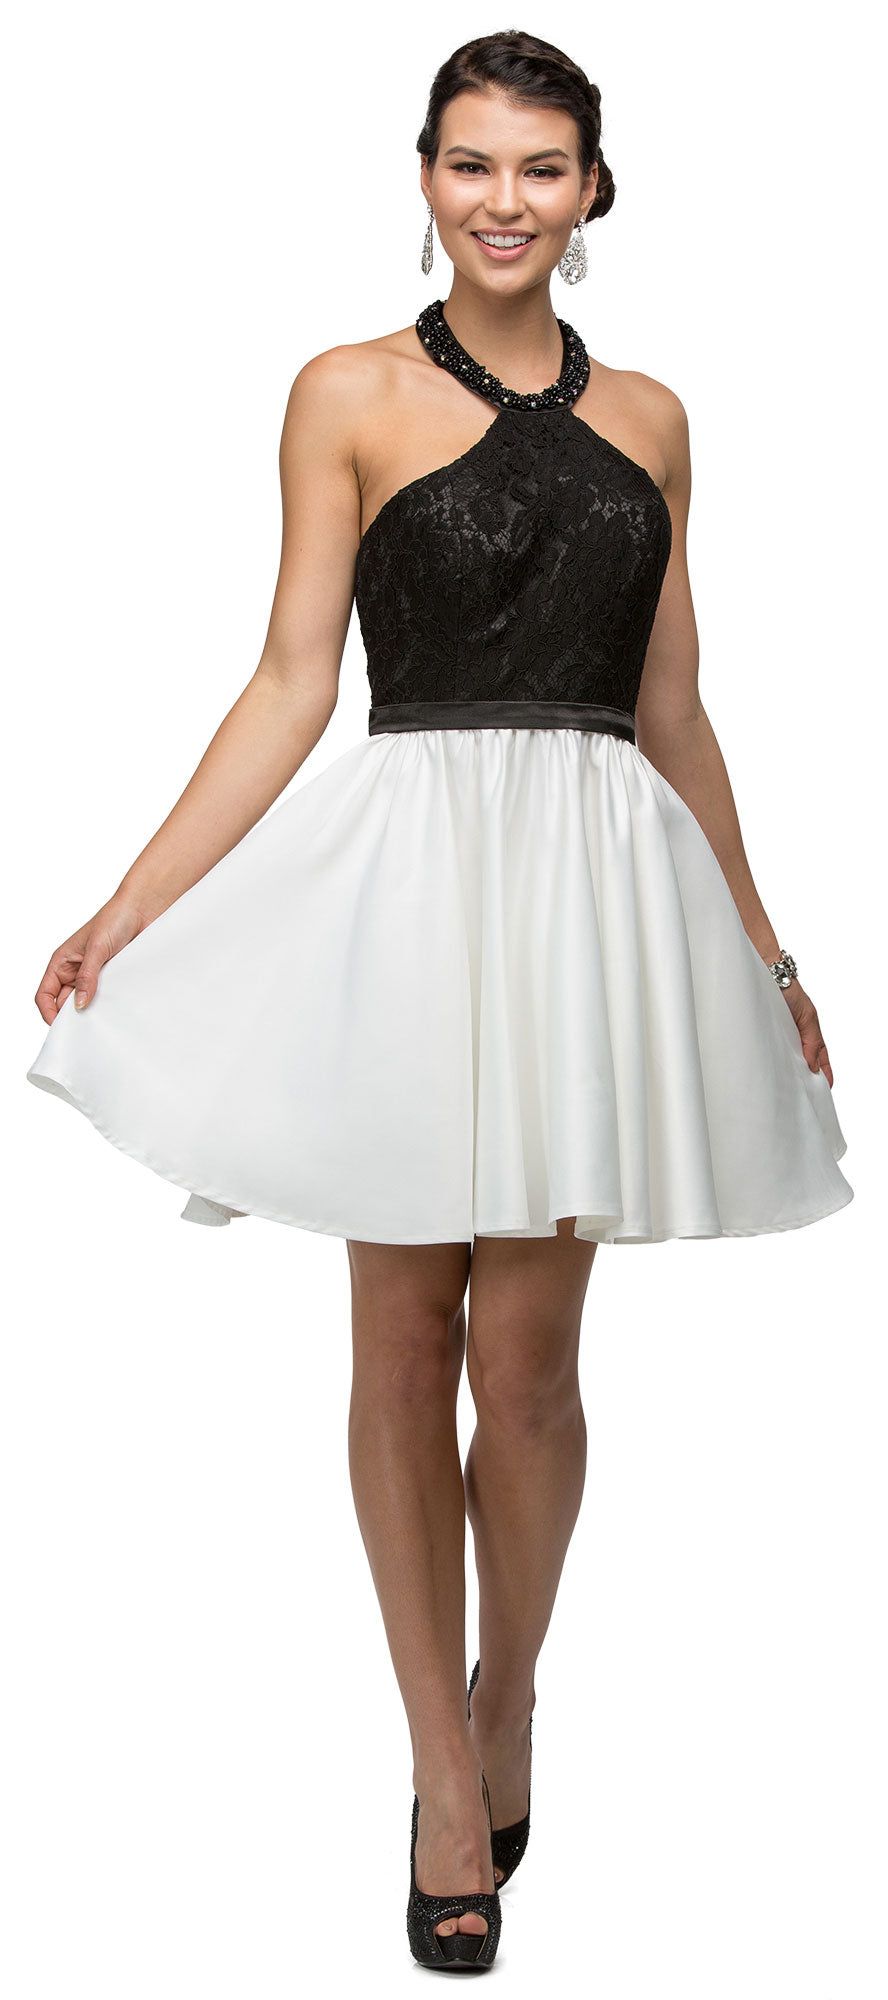 Main image of Halter Lace Top Beaded Neck Short Homecoming Party Dress